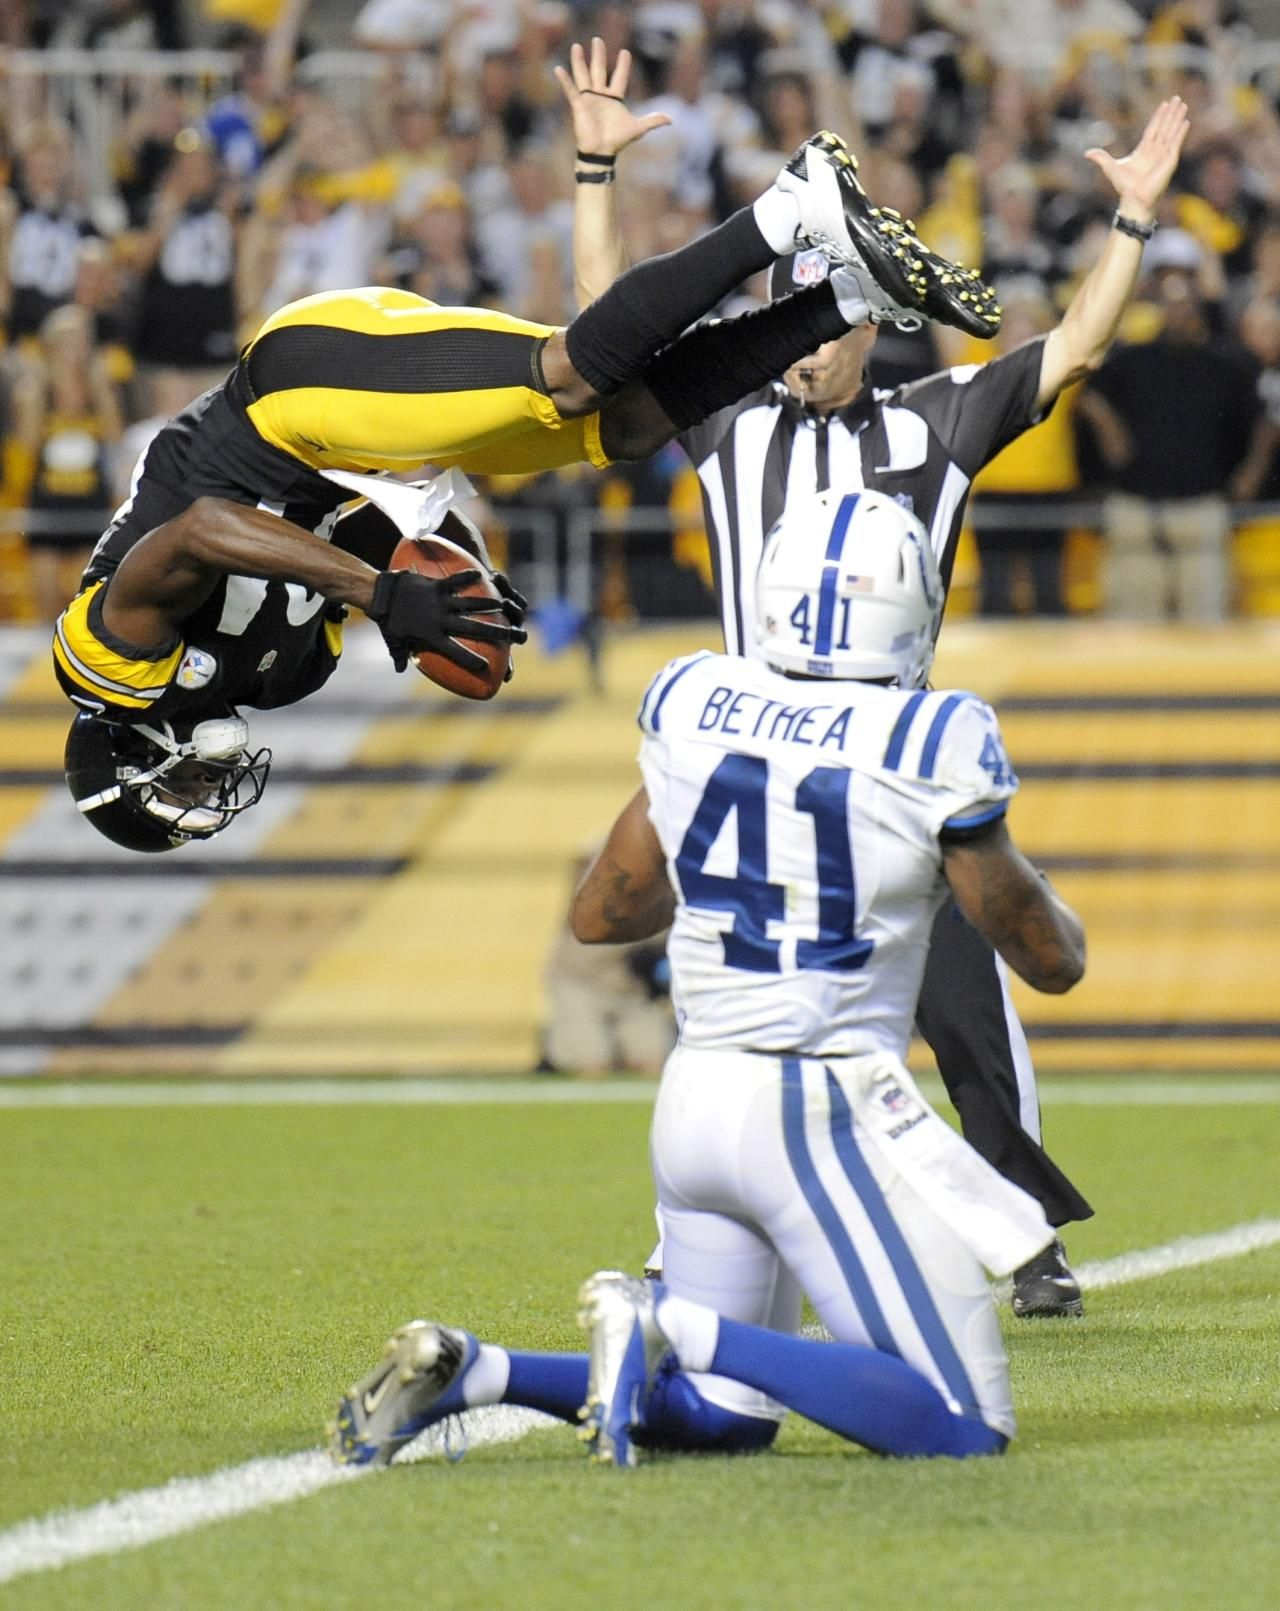 3c6c4421dc5 NFL.com Photos - Colts Steelers Football - Antonio Brown